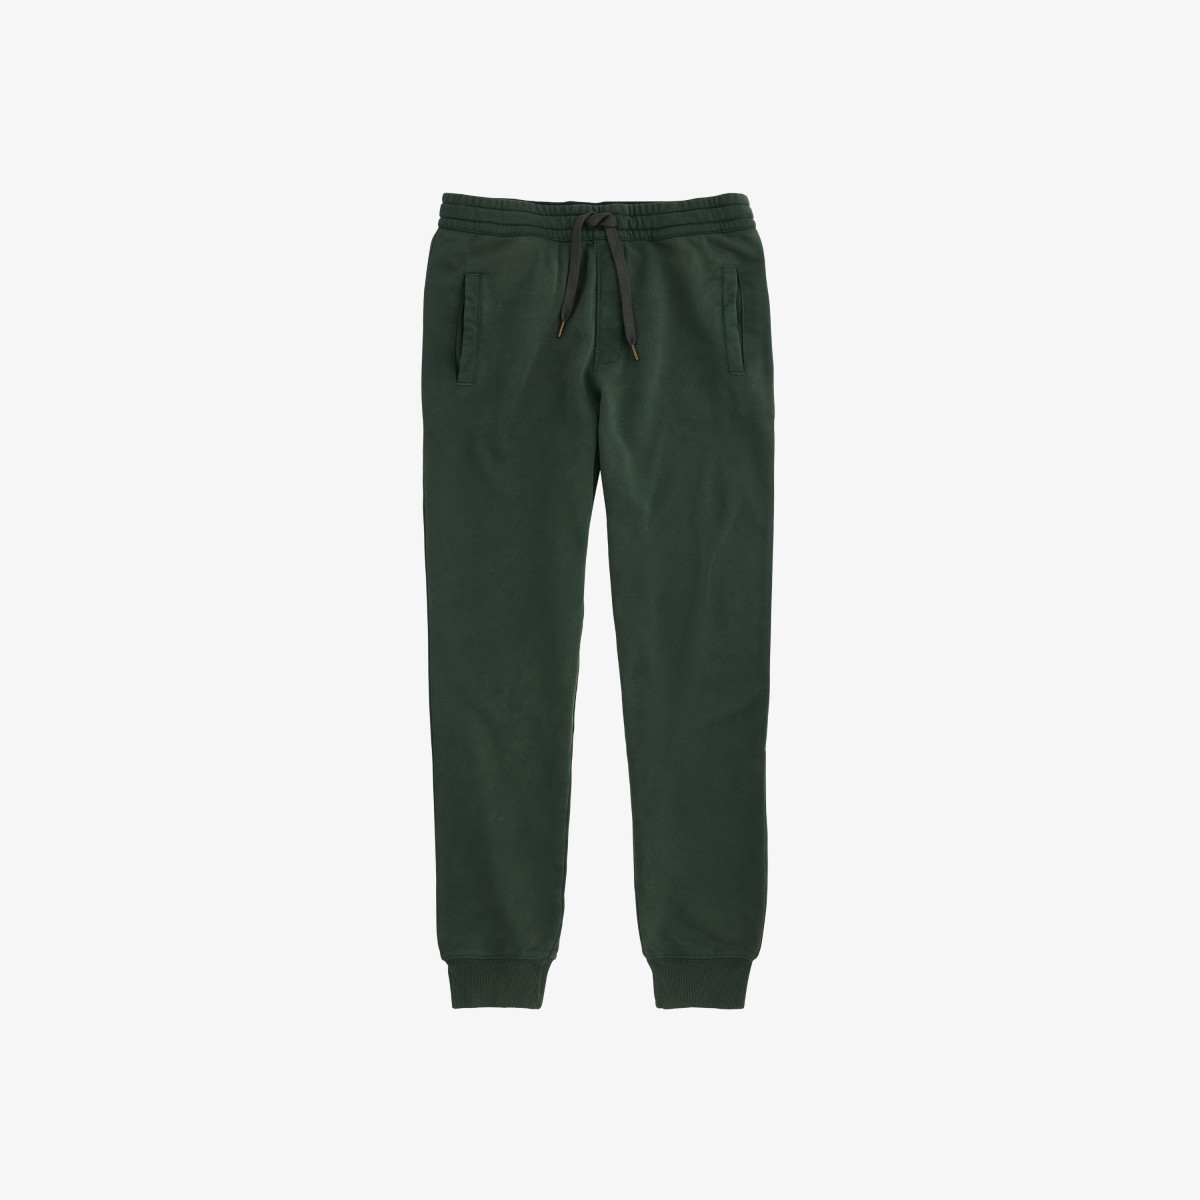 PANT LONG COLD DYE COTT. FL. VERDE SCURO